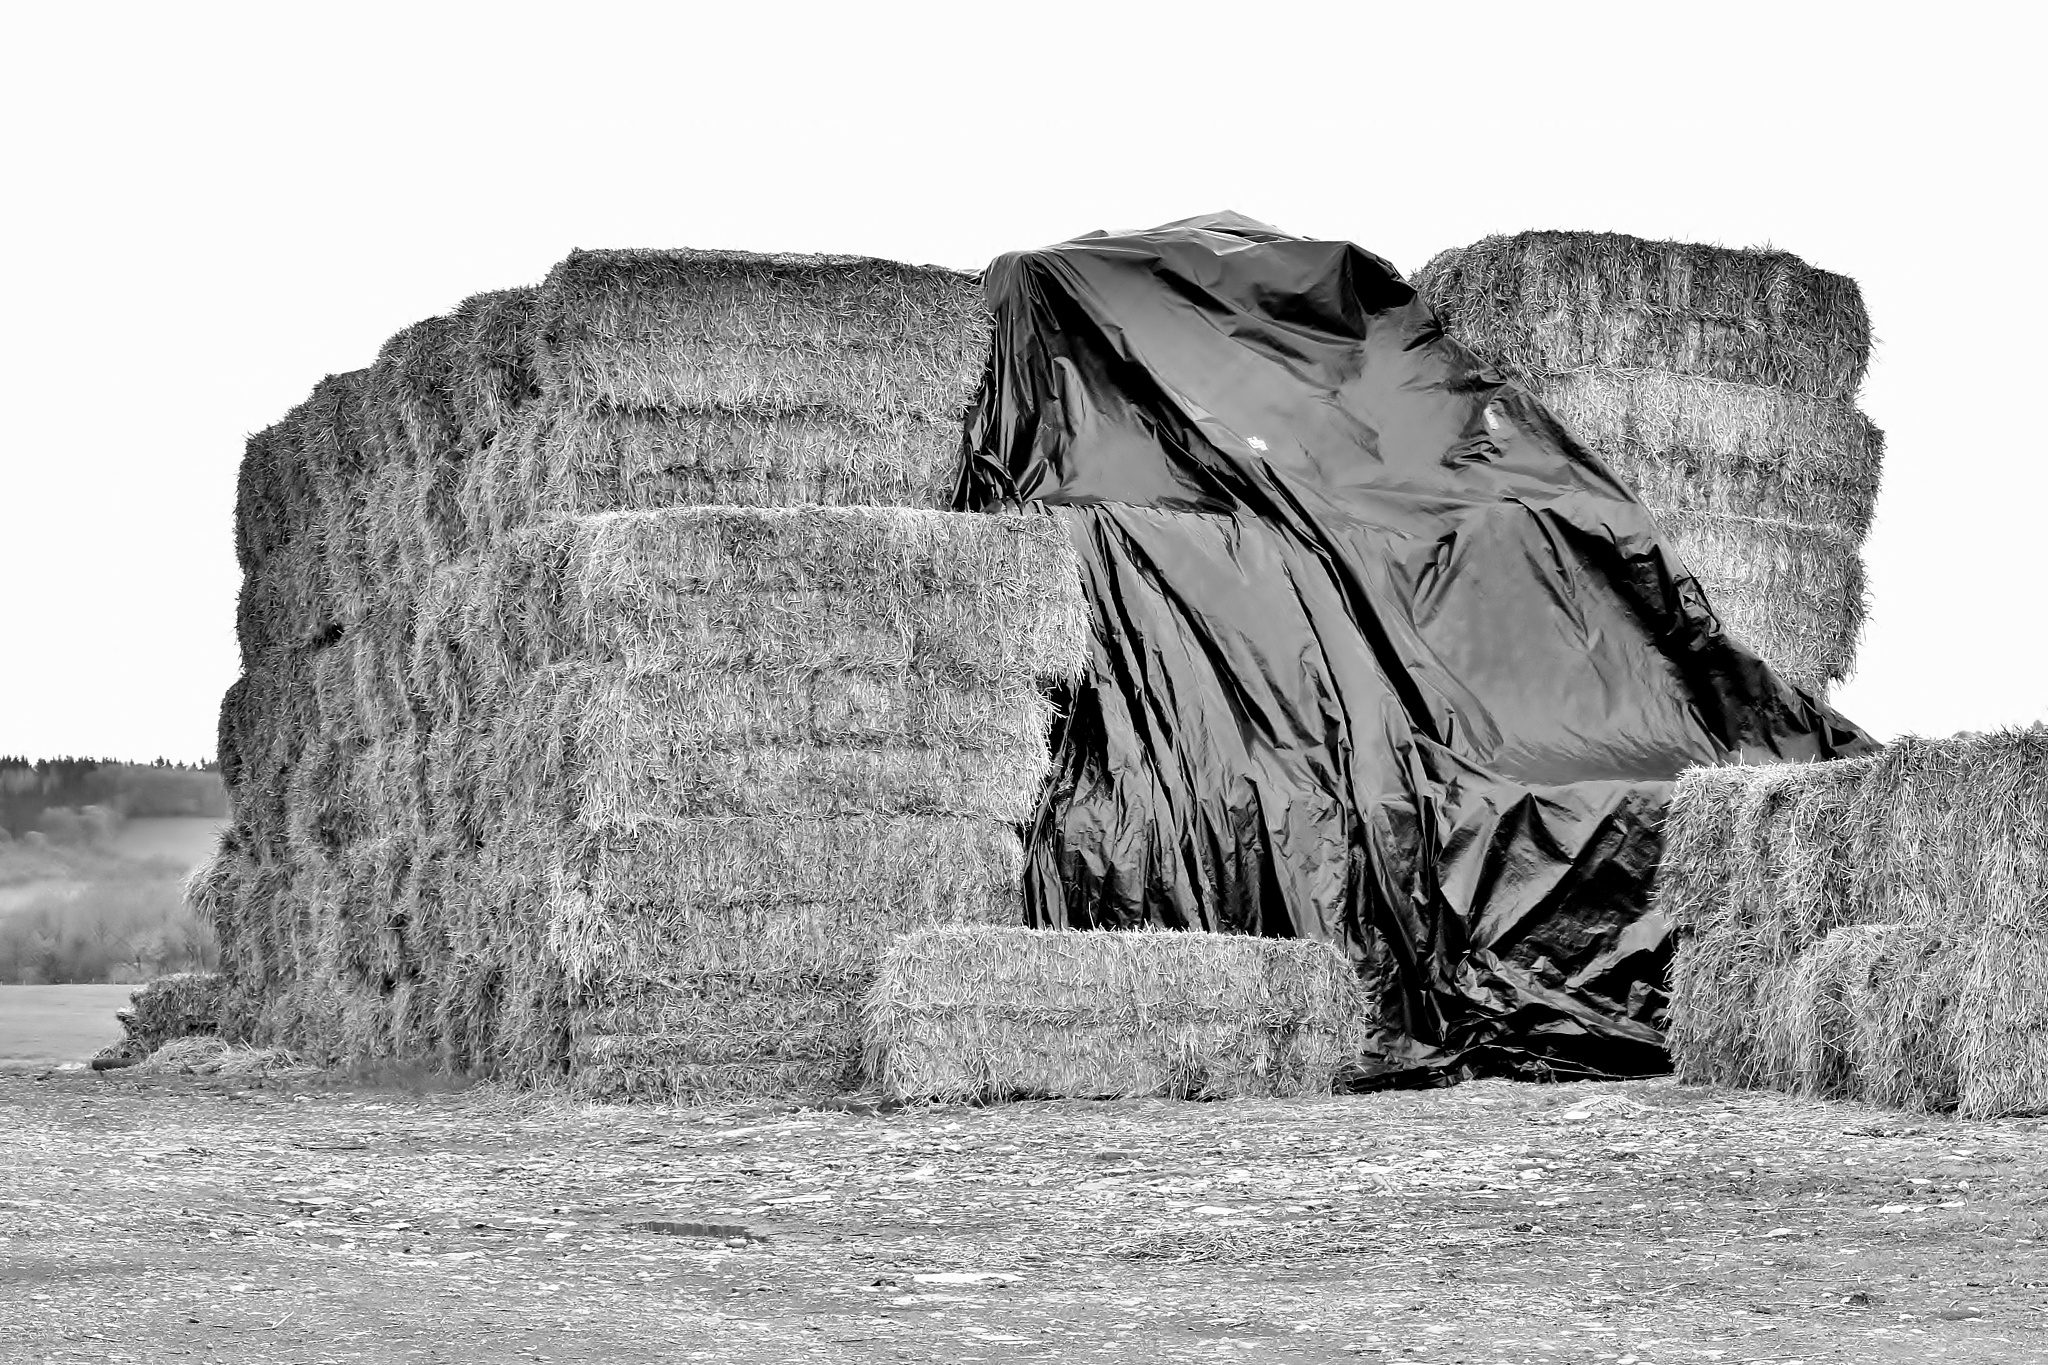 Giant Hay Stack - Monochrome by paul.hosker